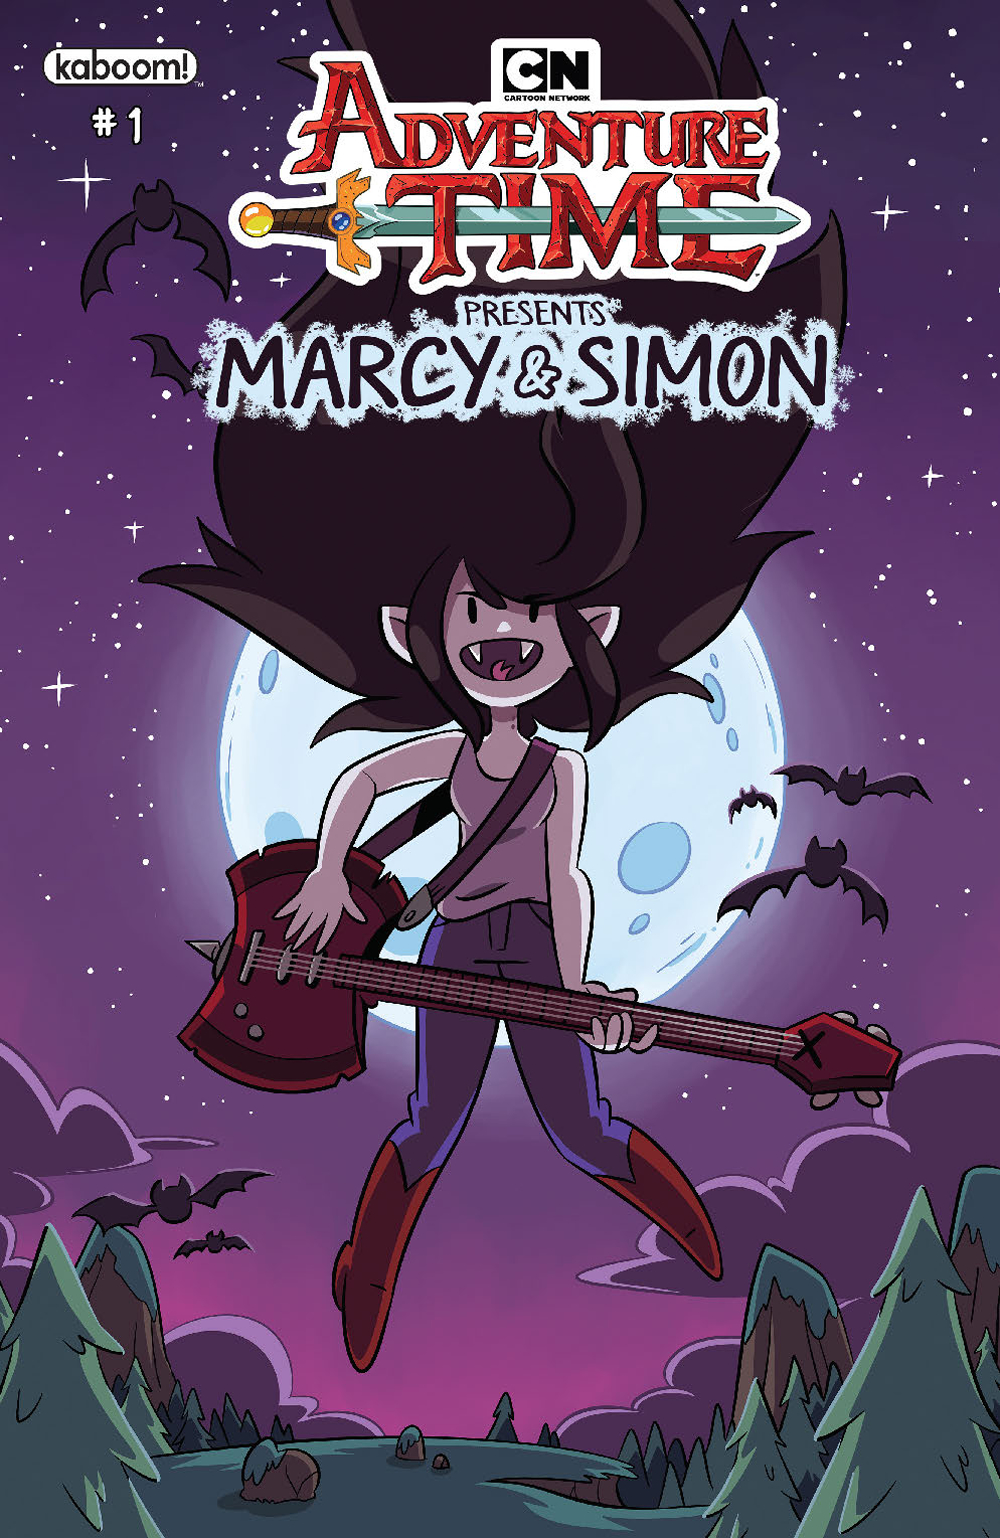 ADVENTURE TIME MARCY & SIMON #1 (OF 6) PREORDER MARCY